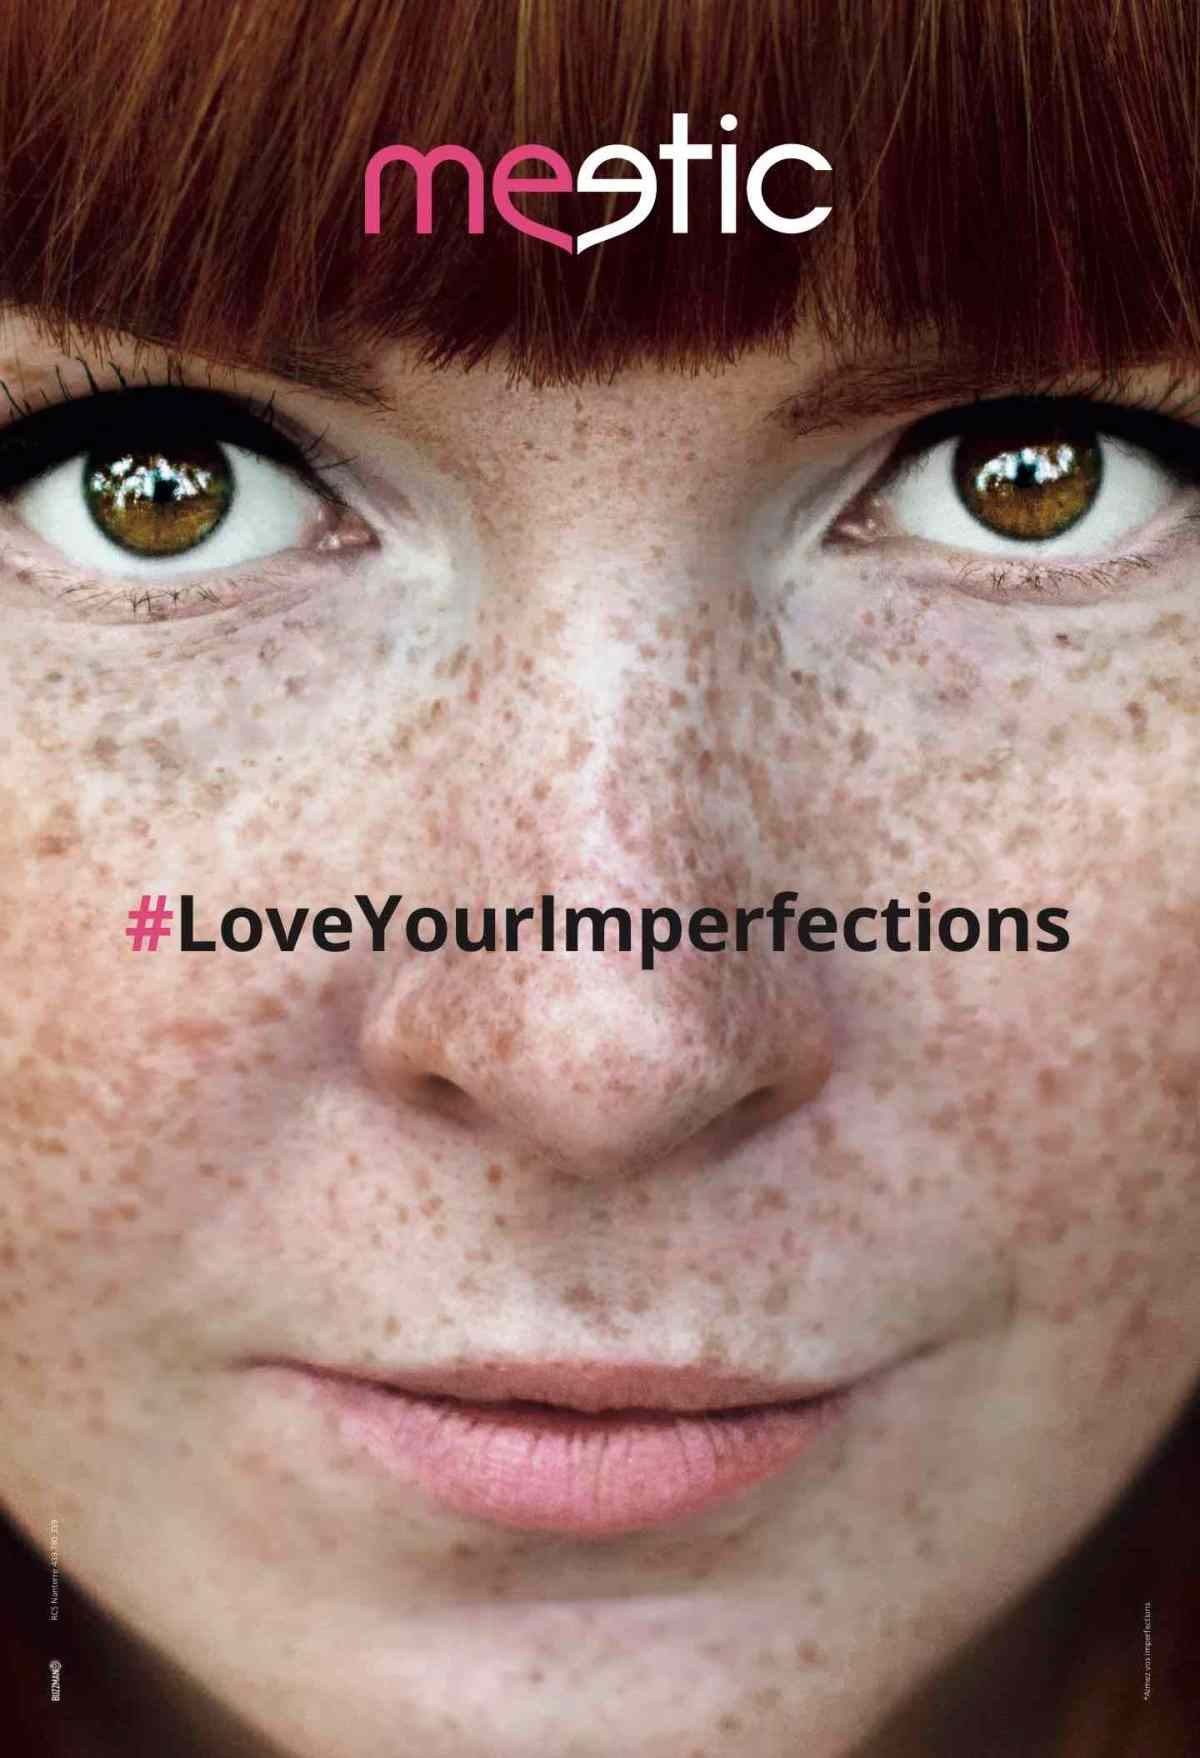 meetic-loveyourimperfections-jupdlc-3